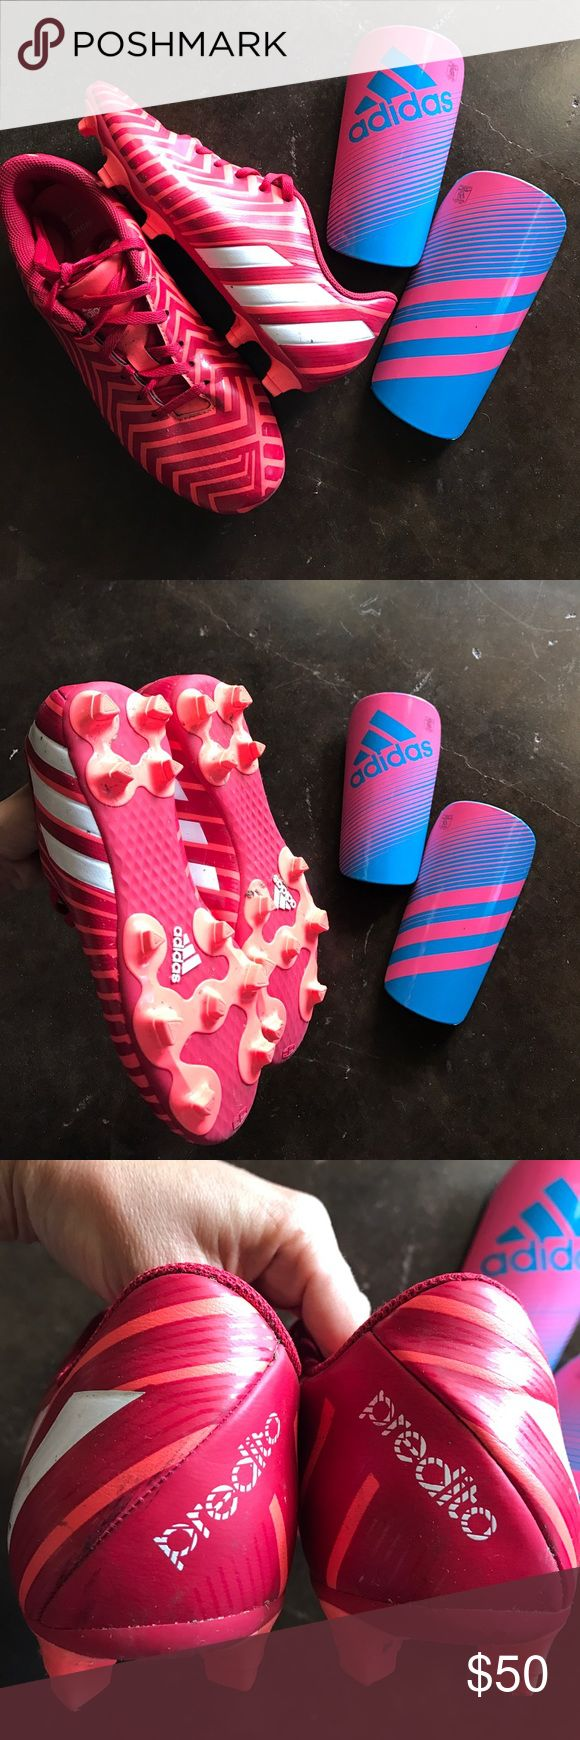 Adidas predito women's soccer cleats shinguards These are bright neon salmon pink and red soccer cleats made specifically for women, in size 8. They have a super grippy modern cleat design. I'm also including pink and blue adidas shinguards. I played about 3 games in these shoes, but was unable to keep playing due to injuries. I'm also including the adidas shinguards, which are size small. Adidas Shoes Athletic Shoes